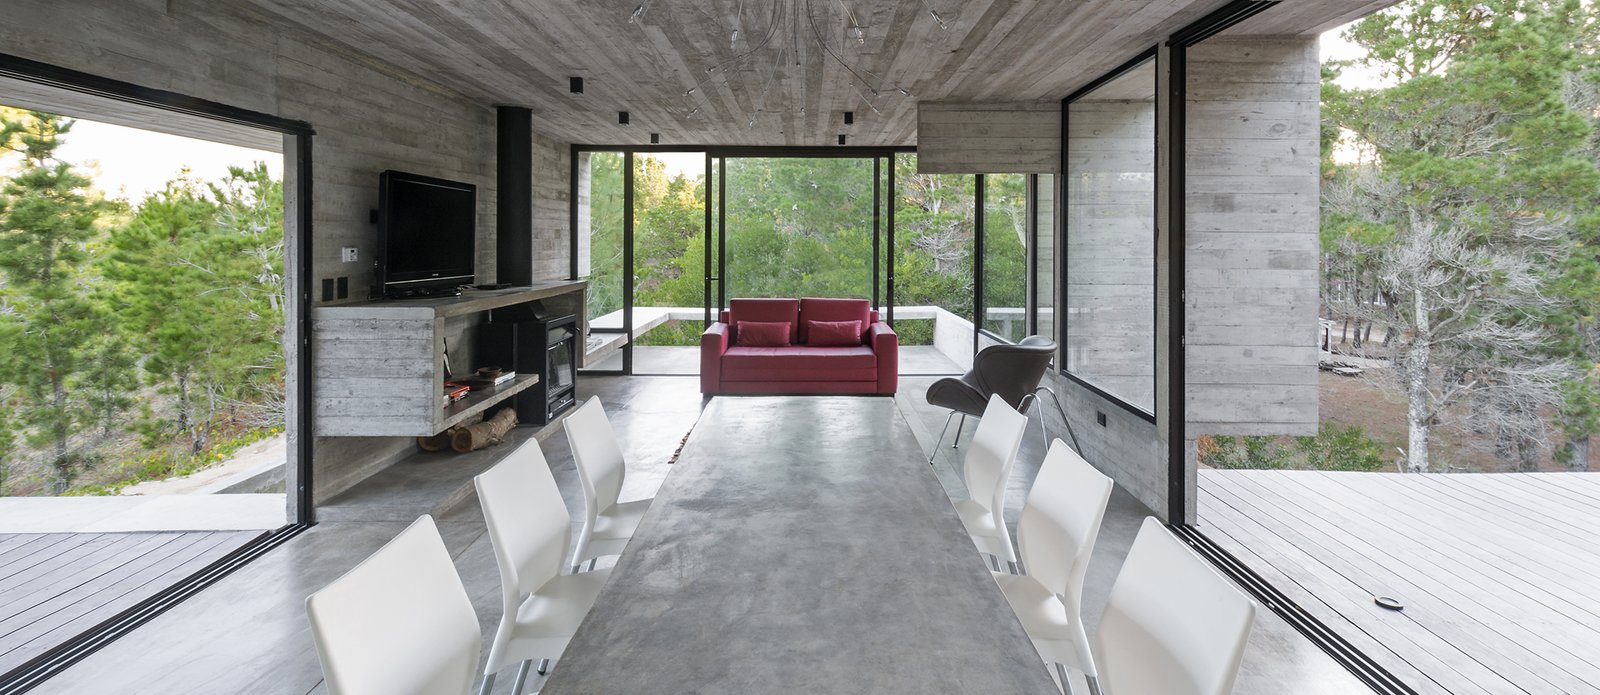 Living Room, Bench, Chair, Sofa, Accent Lighting, Wood Burning Fireplace, and Concrete Floor Wein House - Besonías Almeida arquitectos  Wein House by Besonías Almeida arquitectos